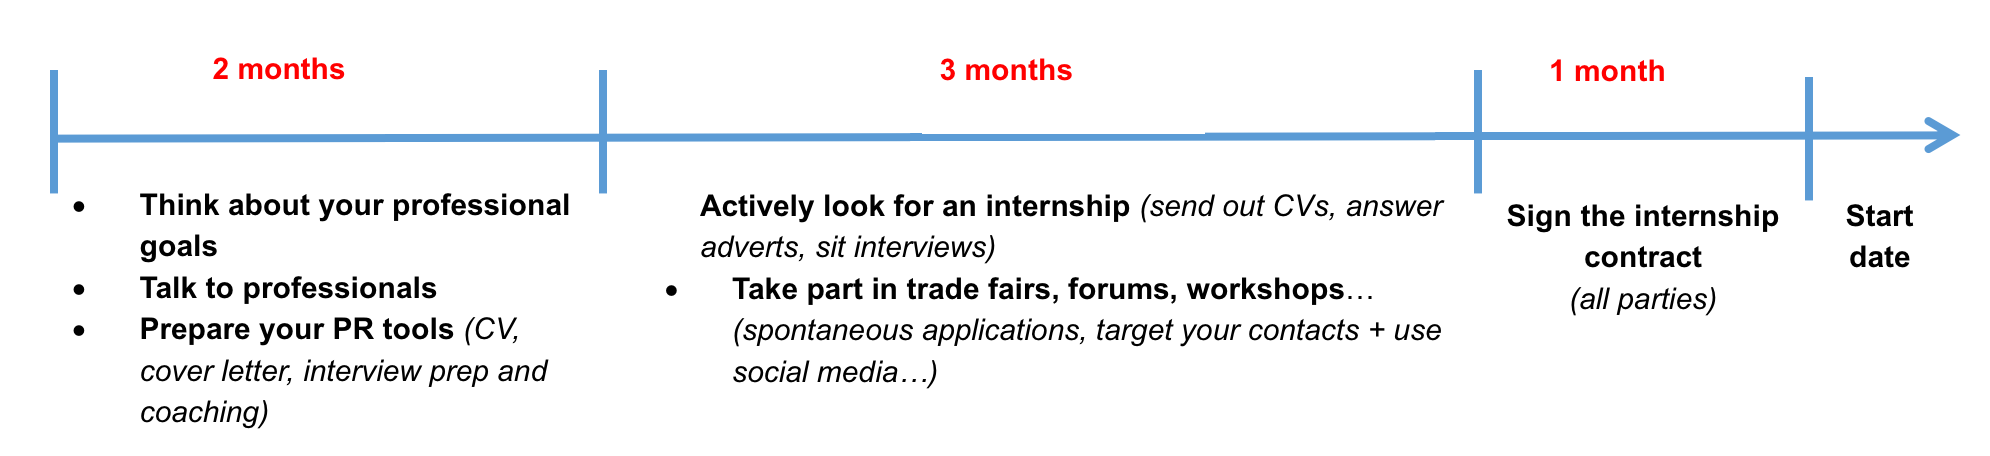 Making the most of your internship - OpenClassrooms